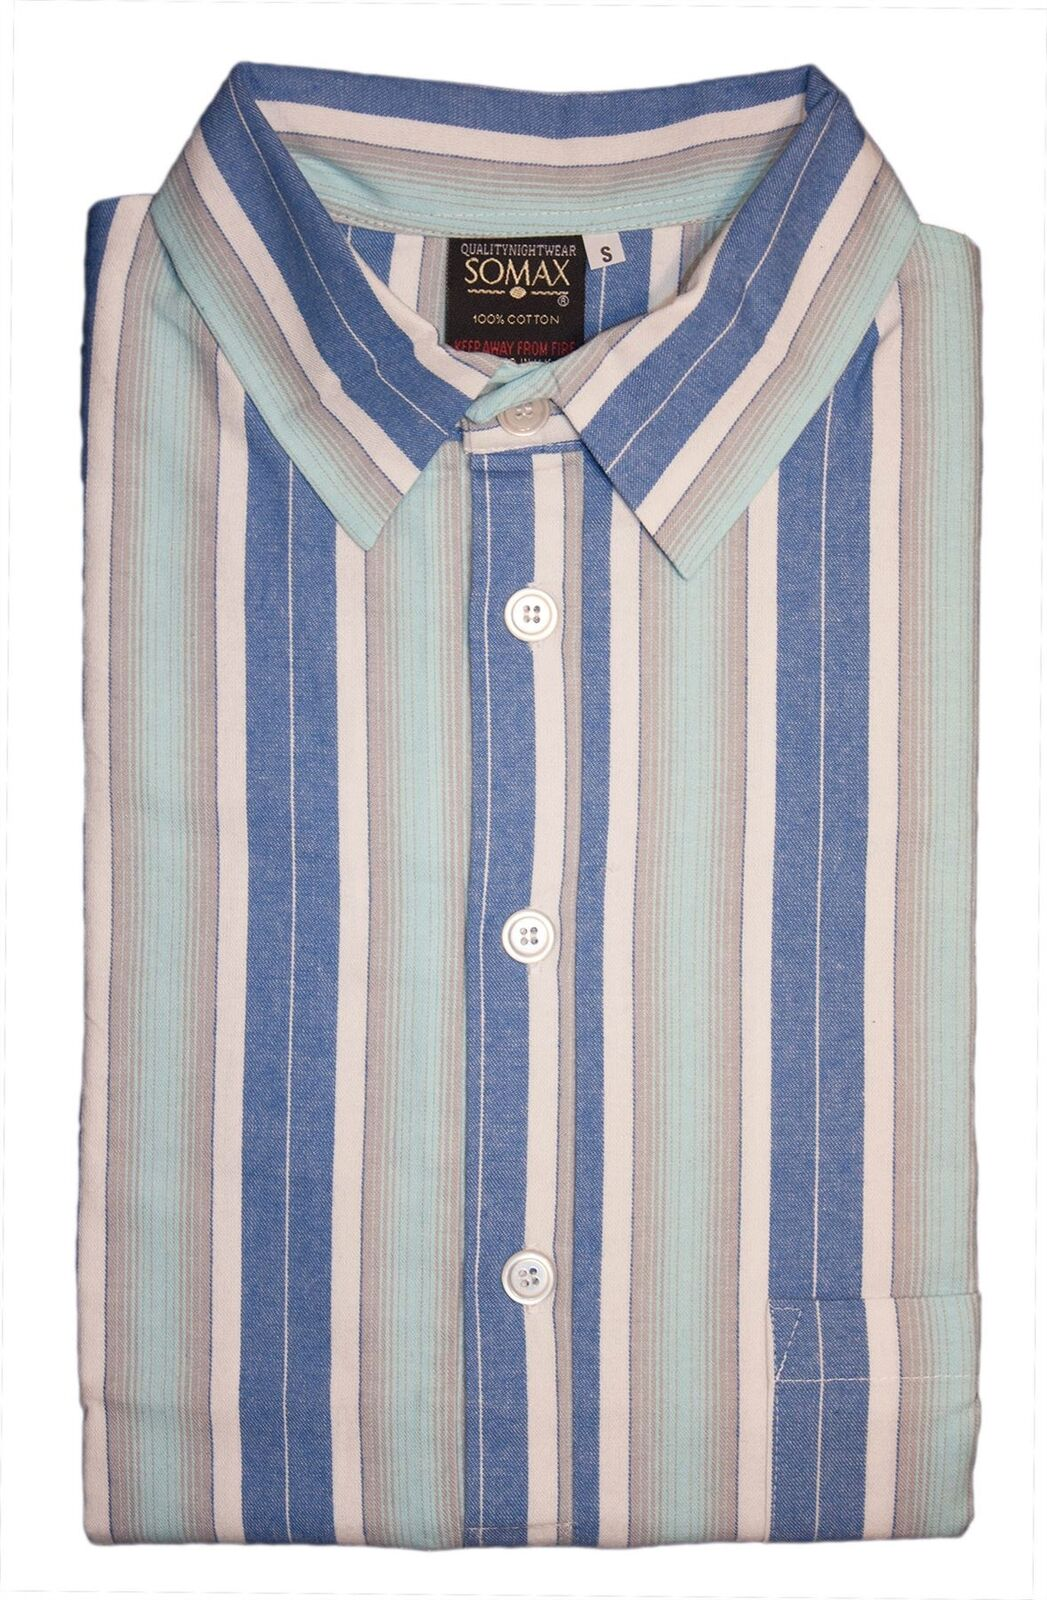 Men's Somax bluee Stripe Cotton Flannelette Nightshirt